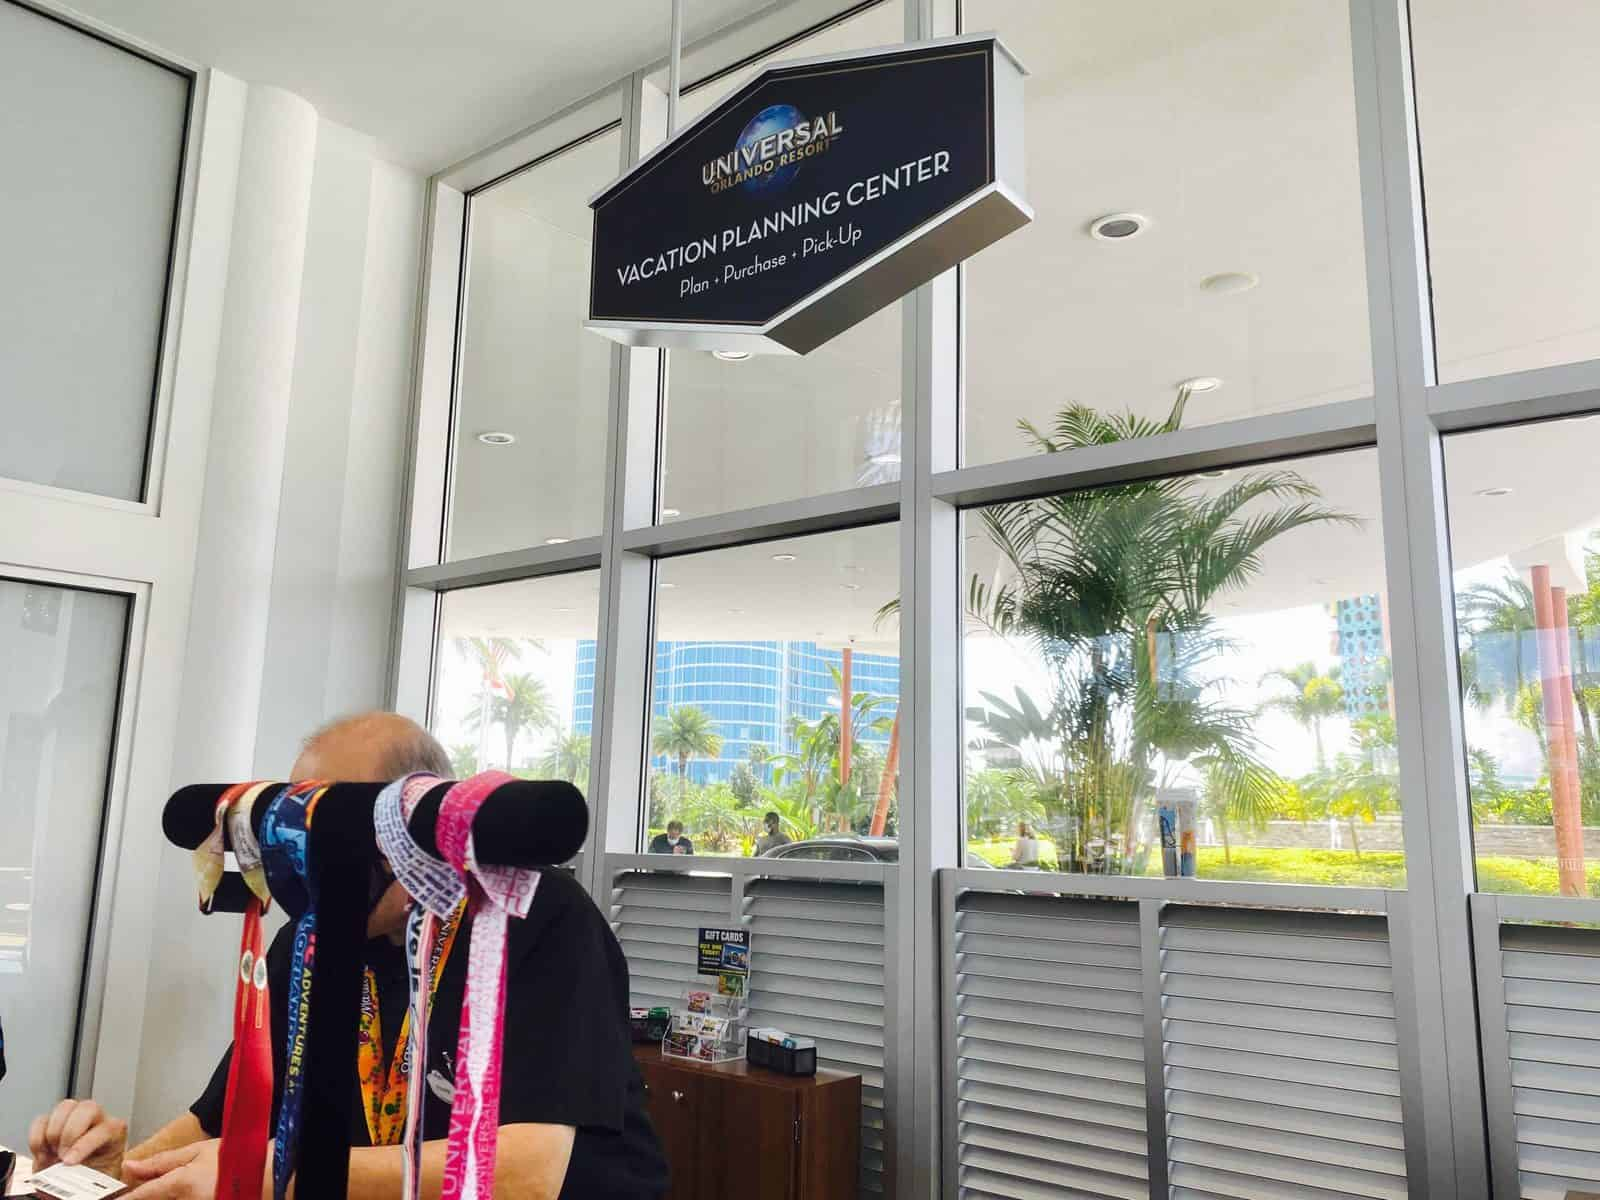 universal tickets and lanyards